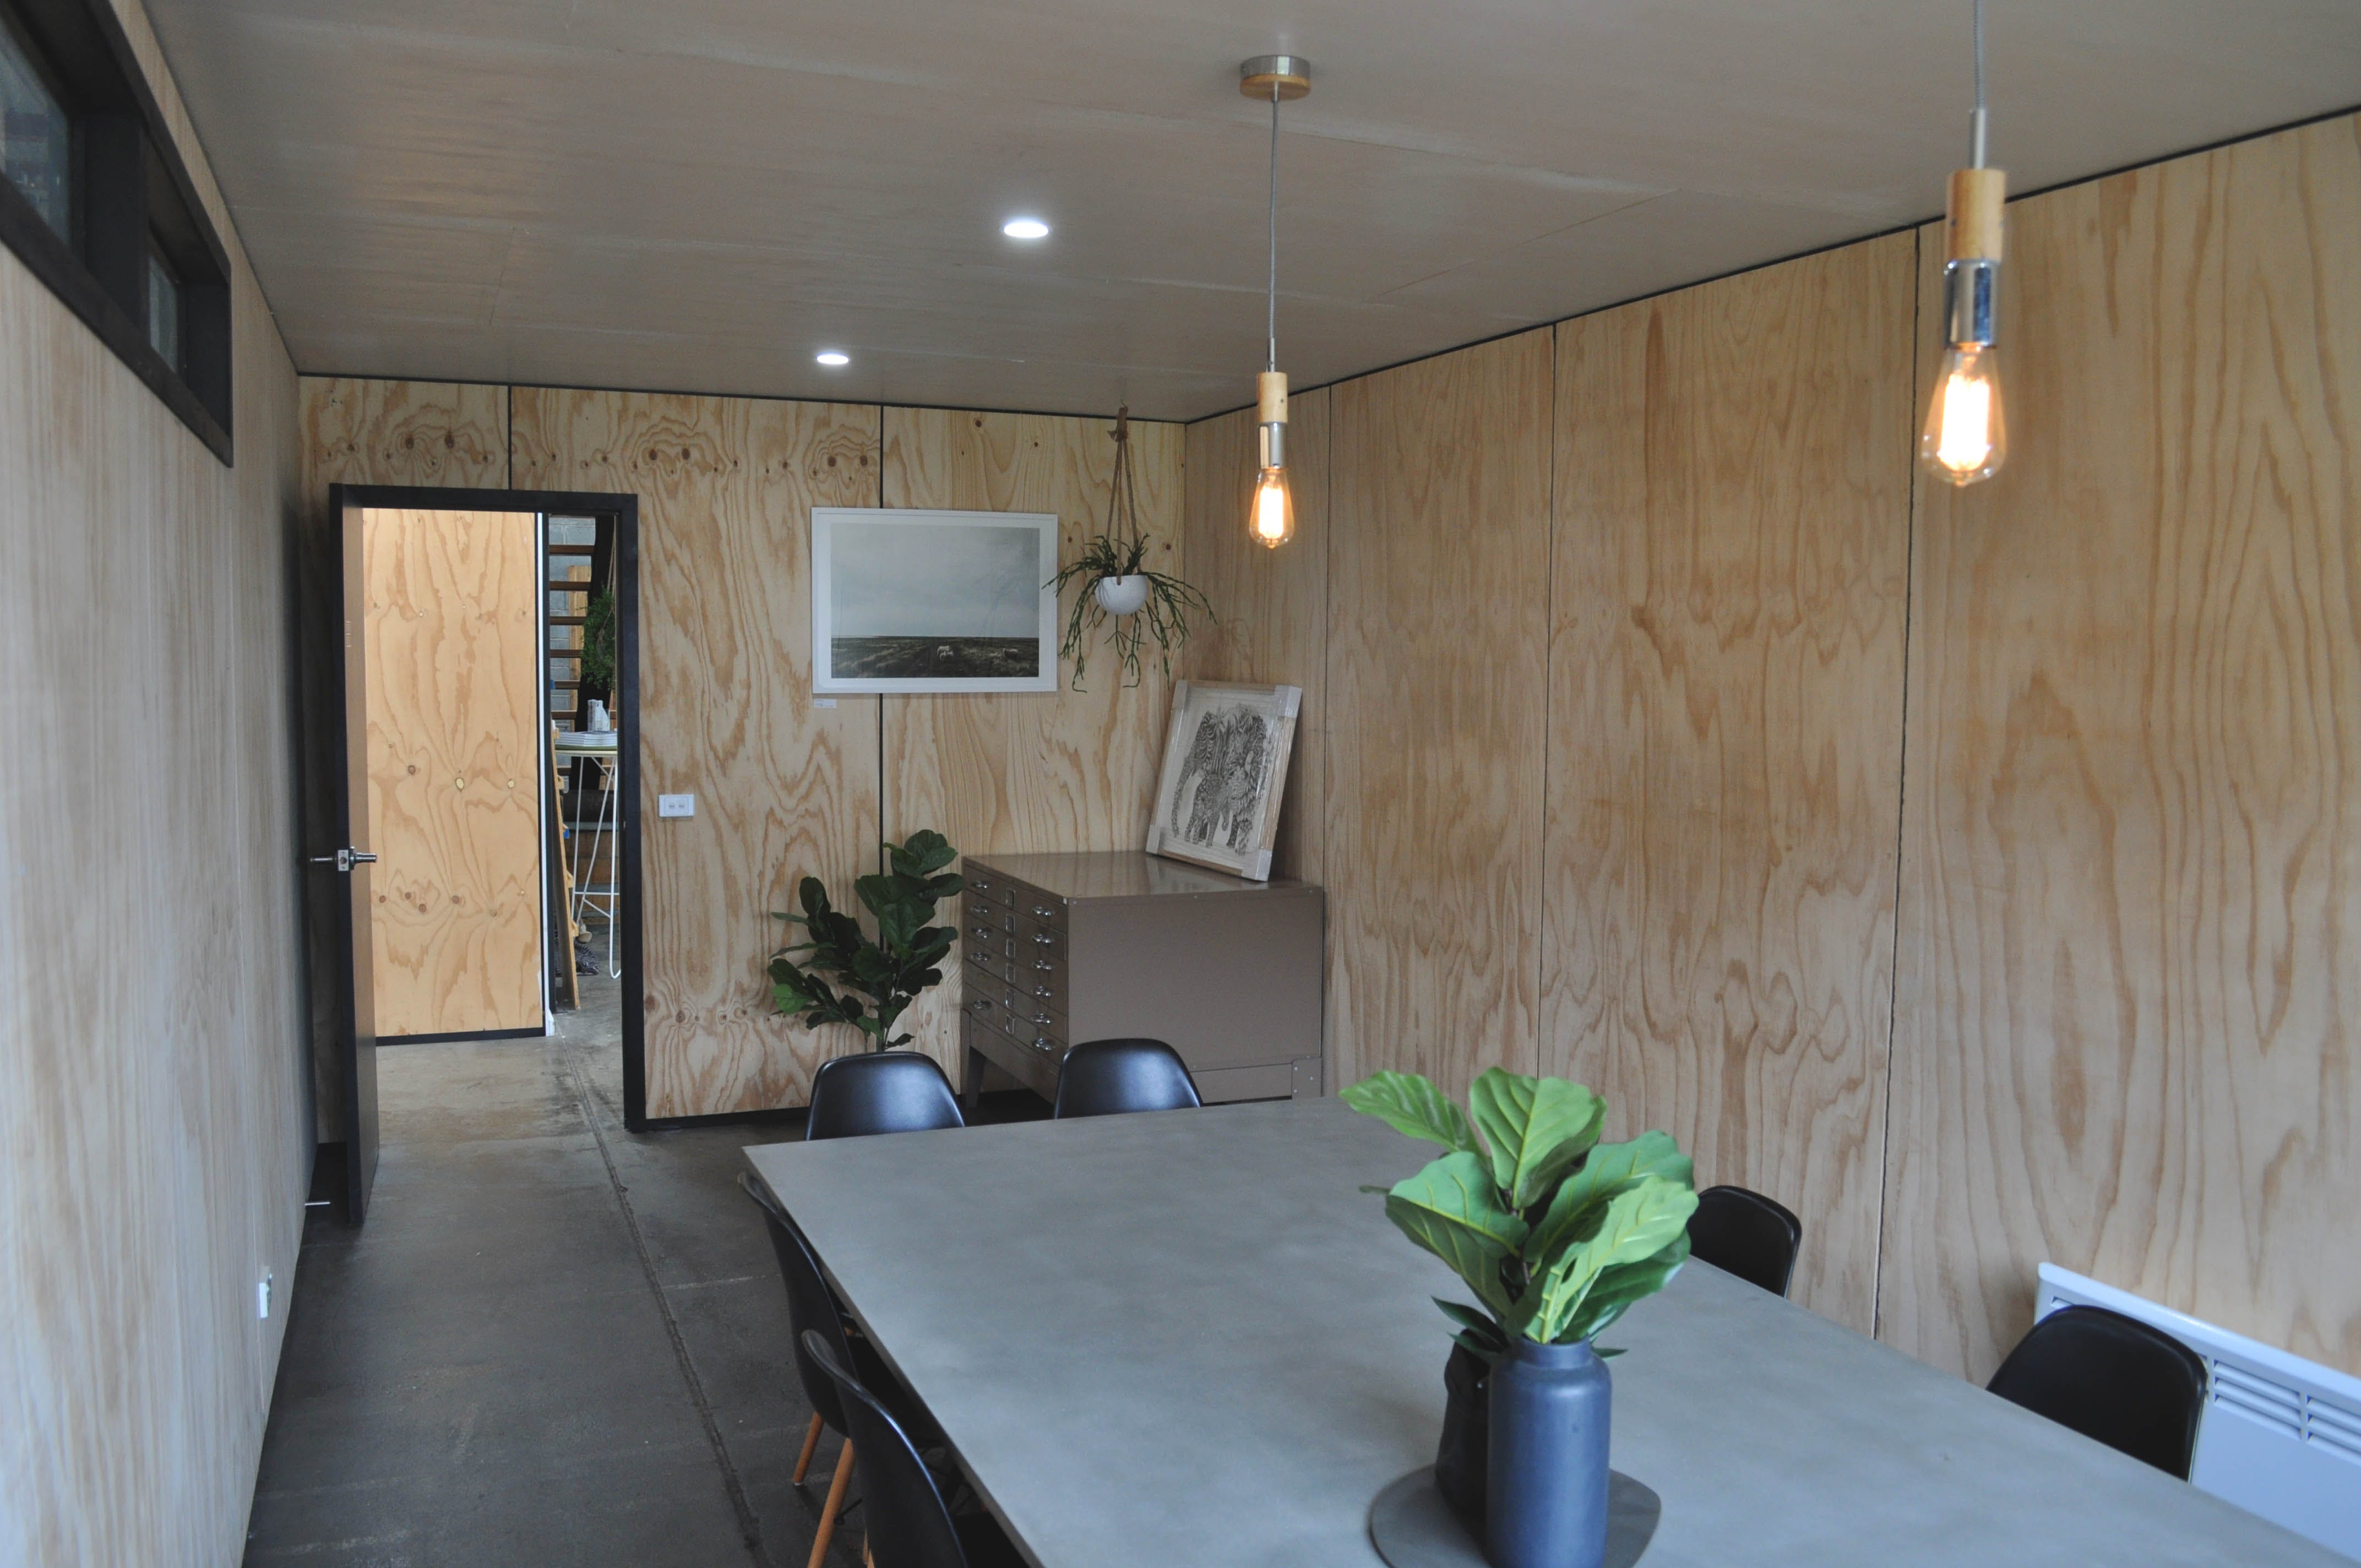 Meeting Room, multi-use area at The Nook Gallery & Studios, image 1